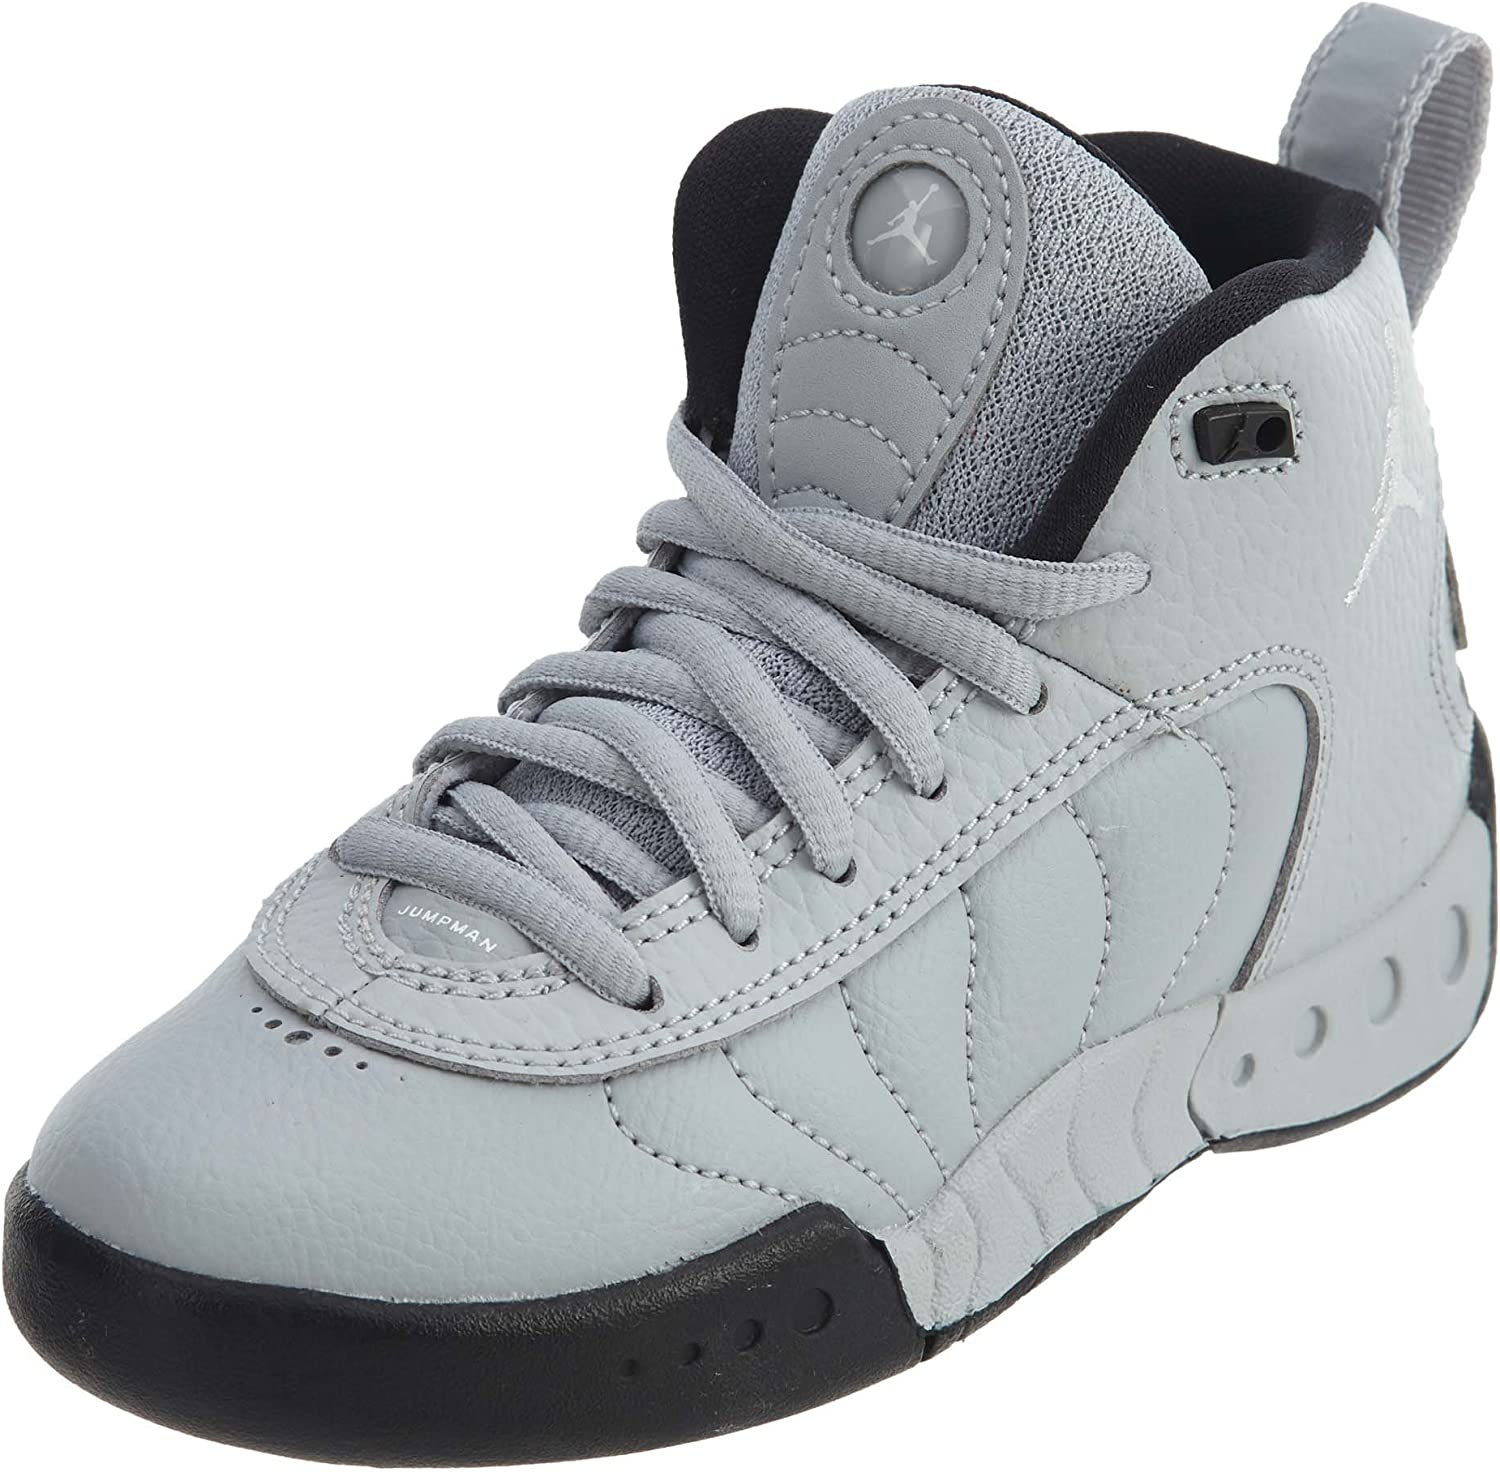 Jordan Jumpman Pro BP Little Kids Shoes Wolf Grey White Black 909419-004